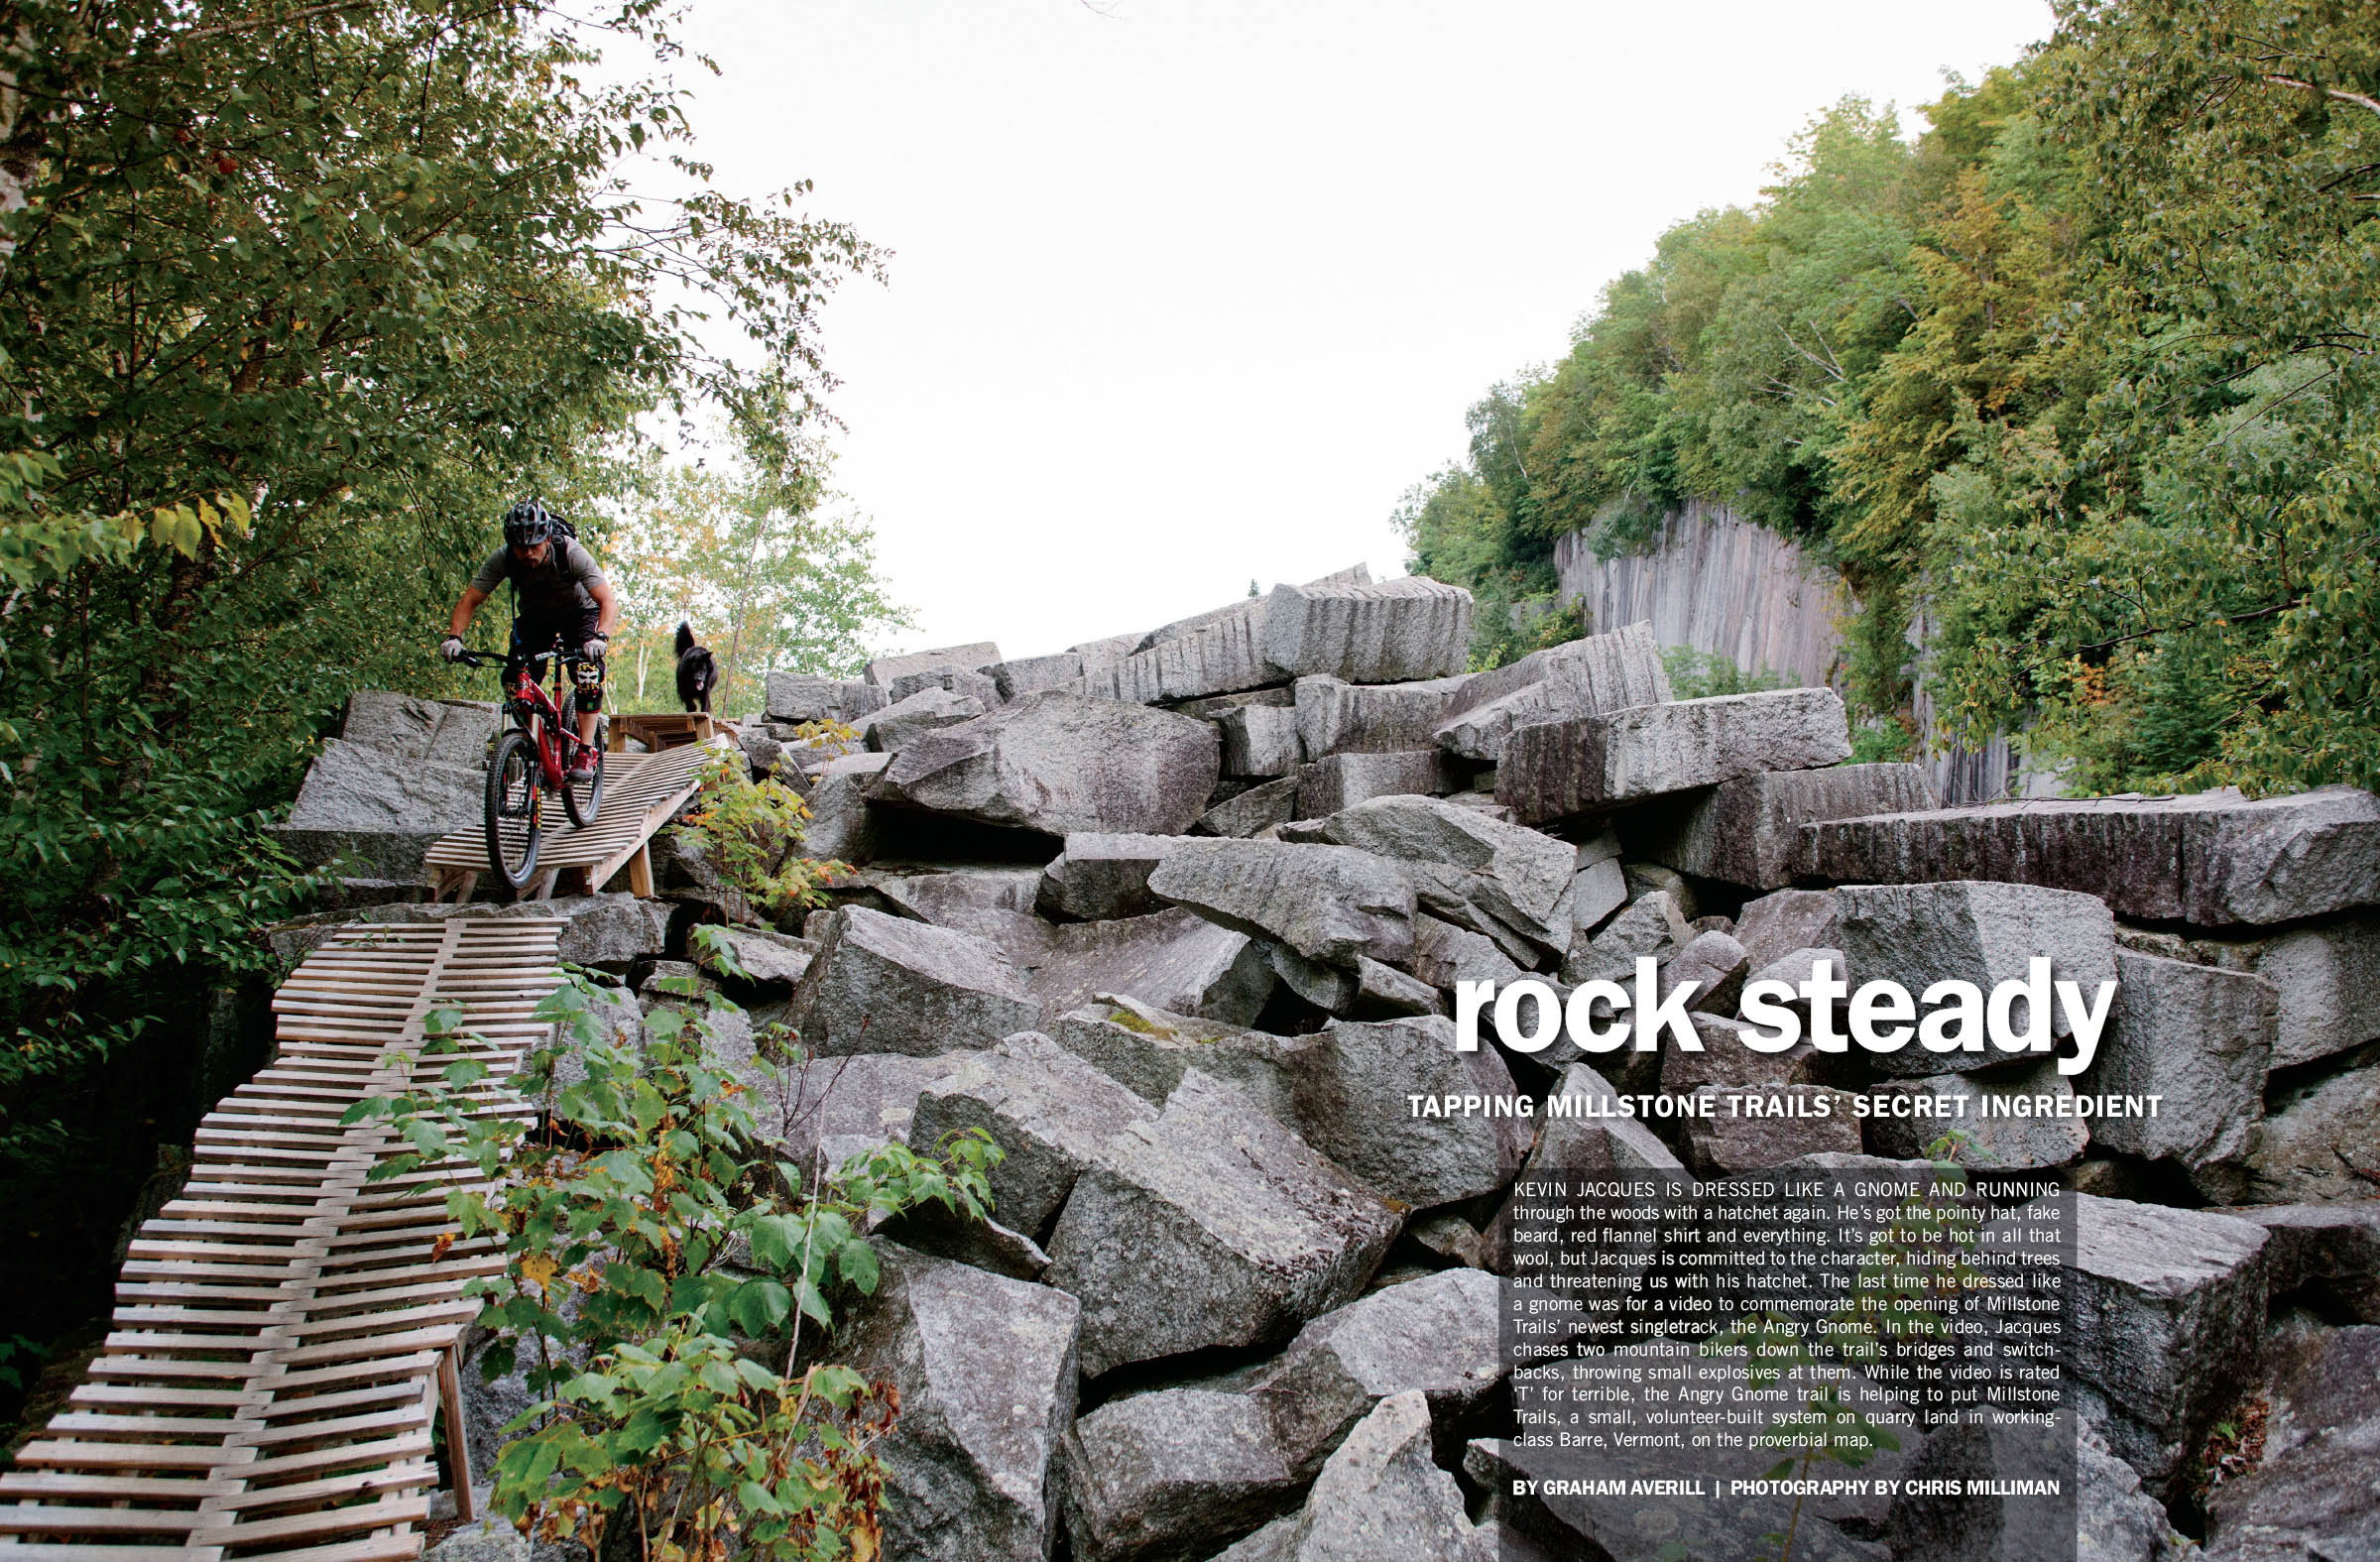 Rock Steady: Tapping Millstone Trails' Secret Ingredient